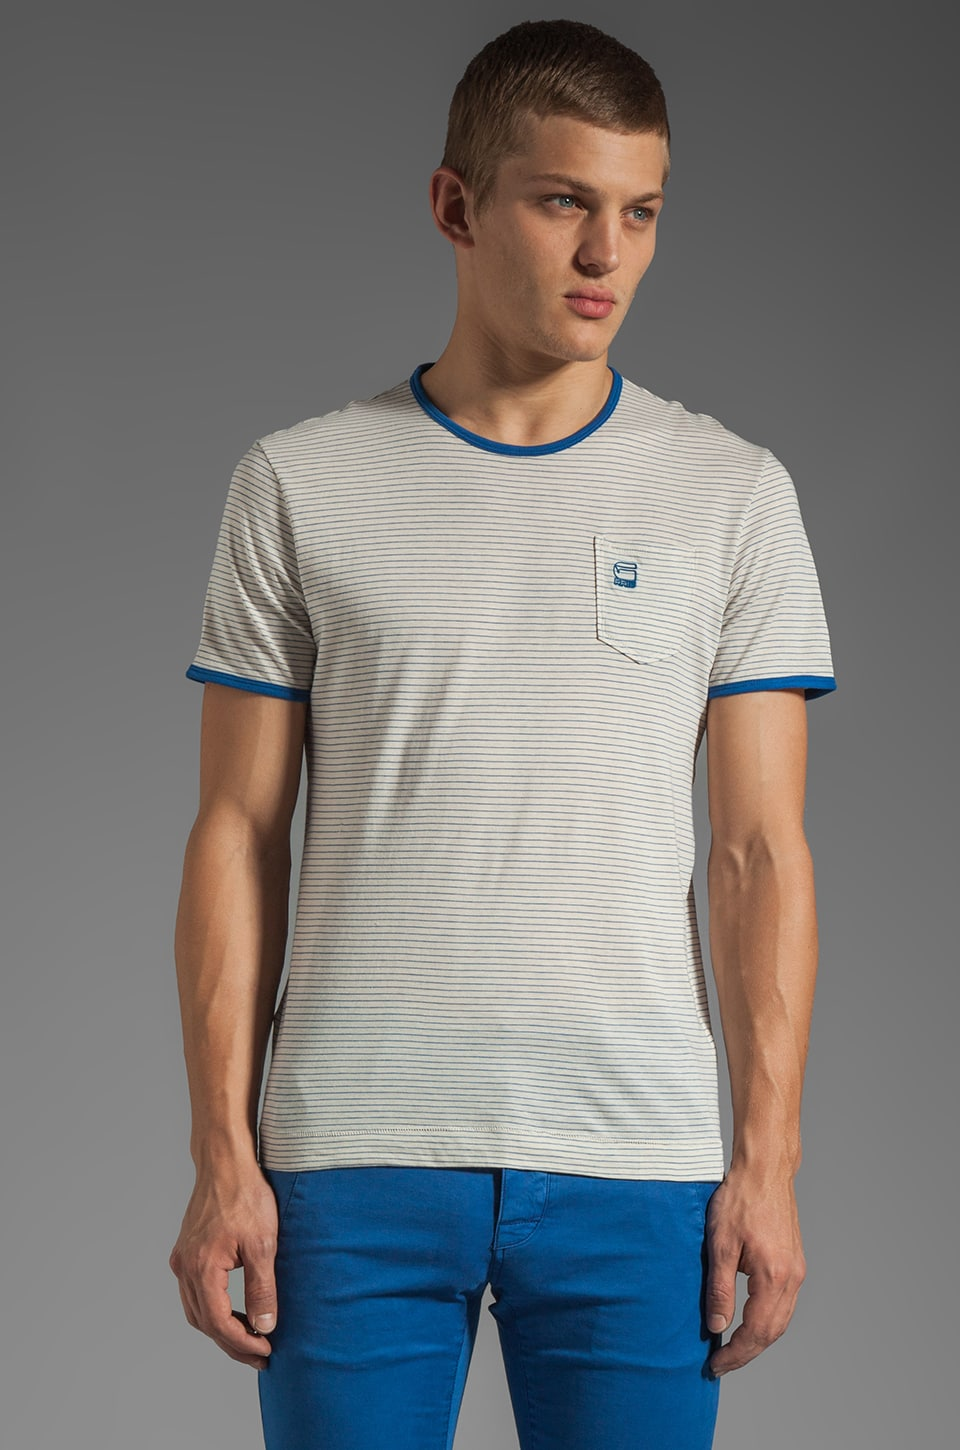 G-Star Brad Stripe Tee in True Blue